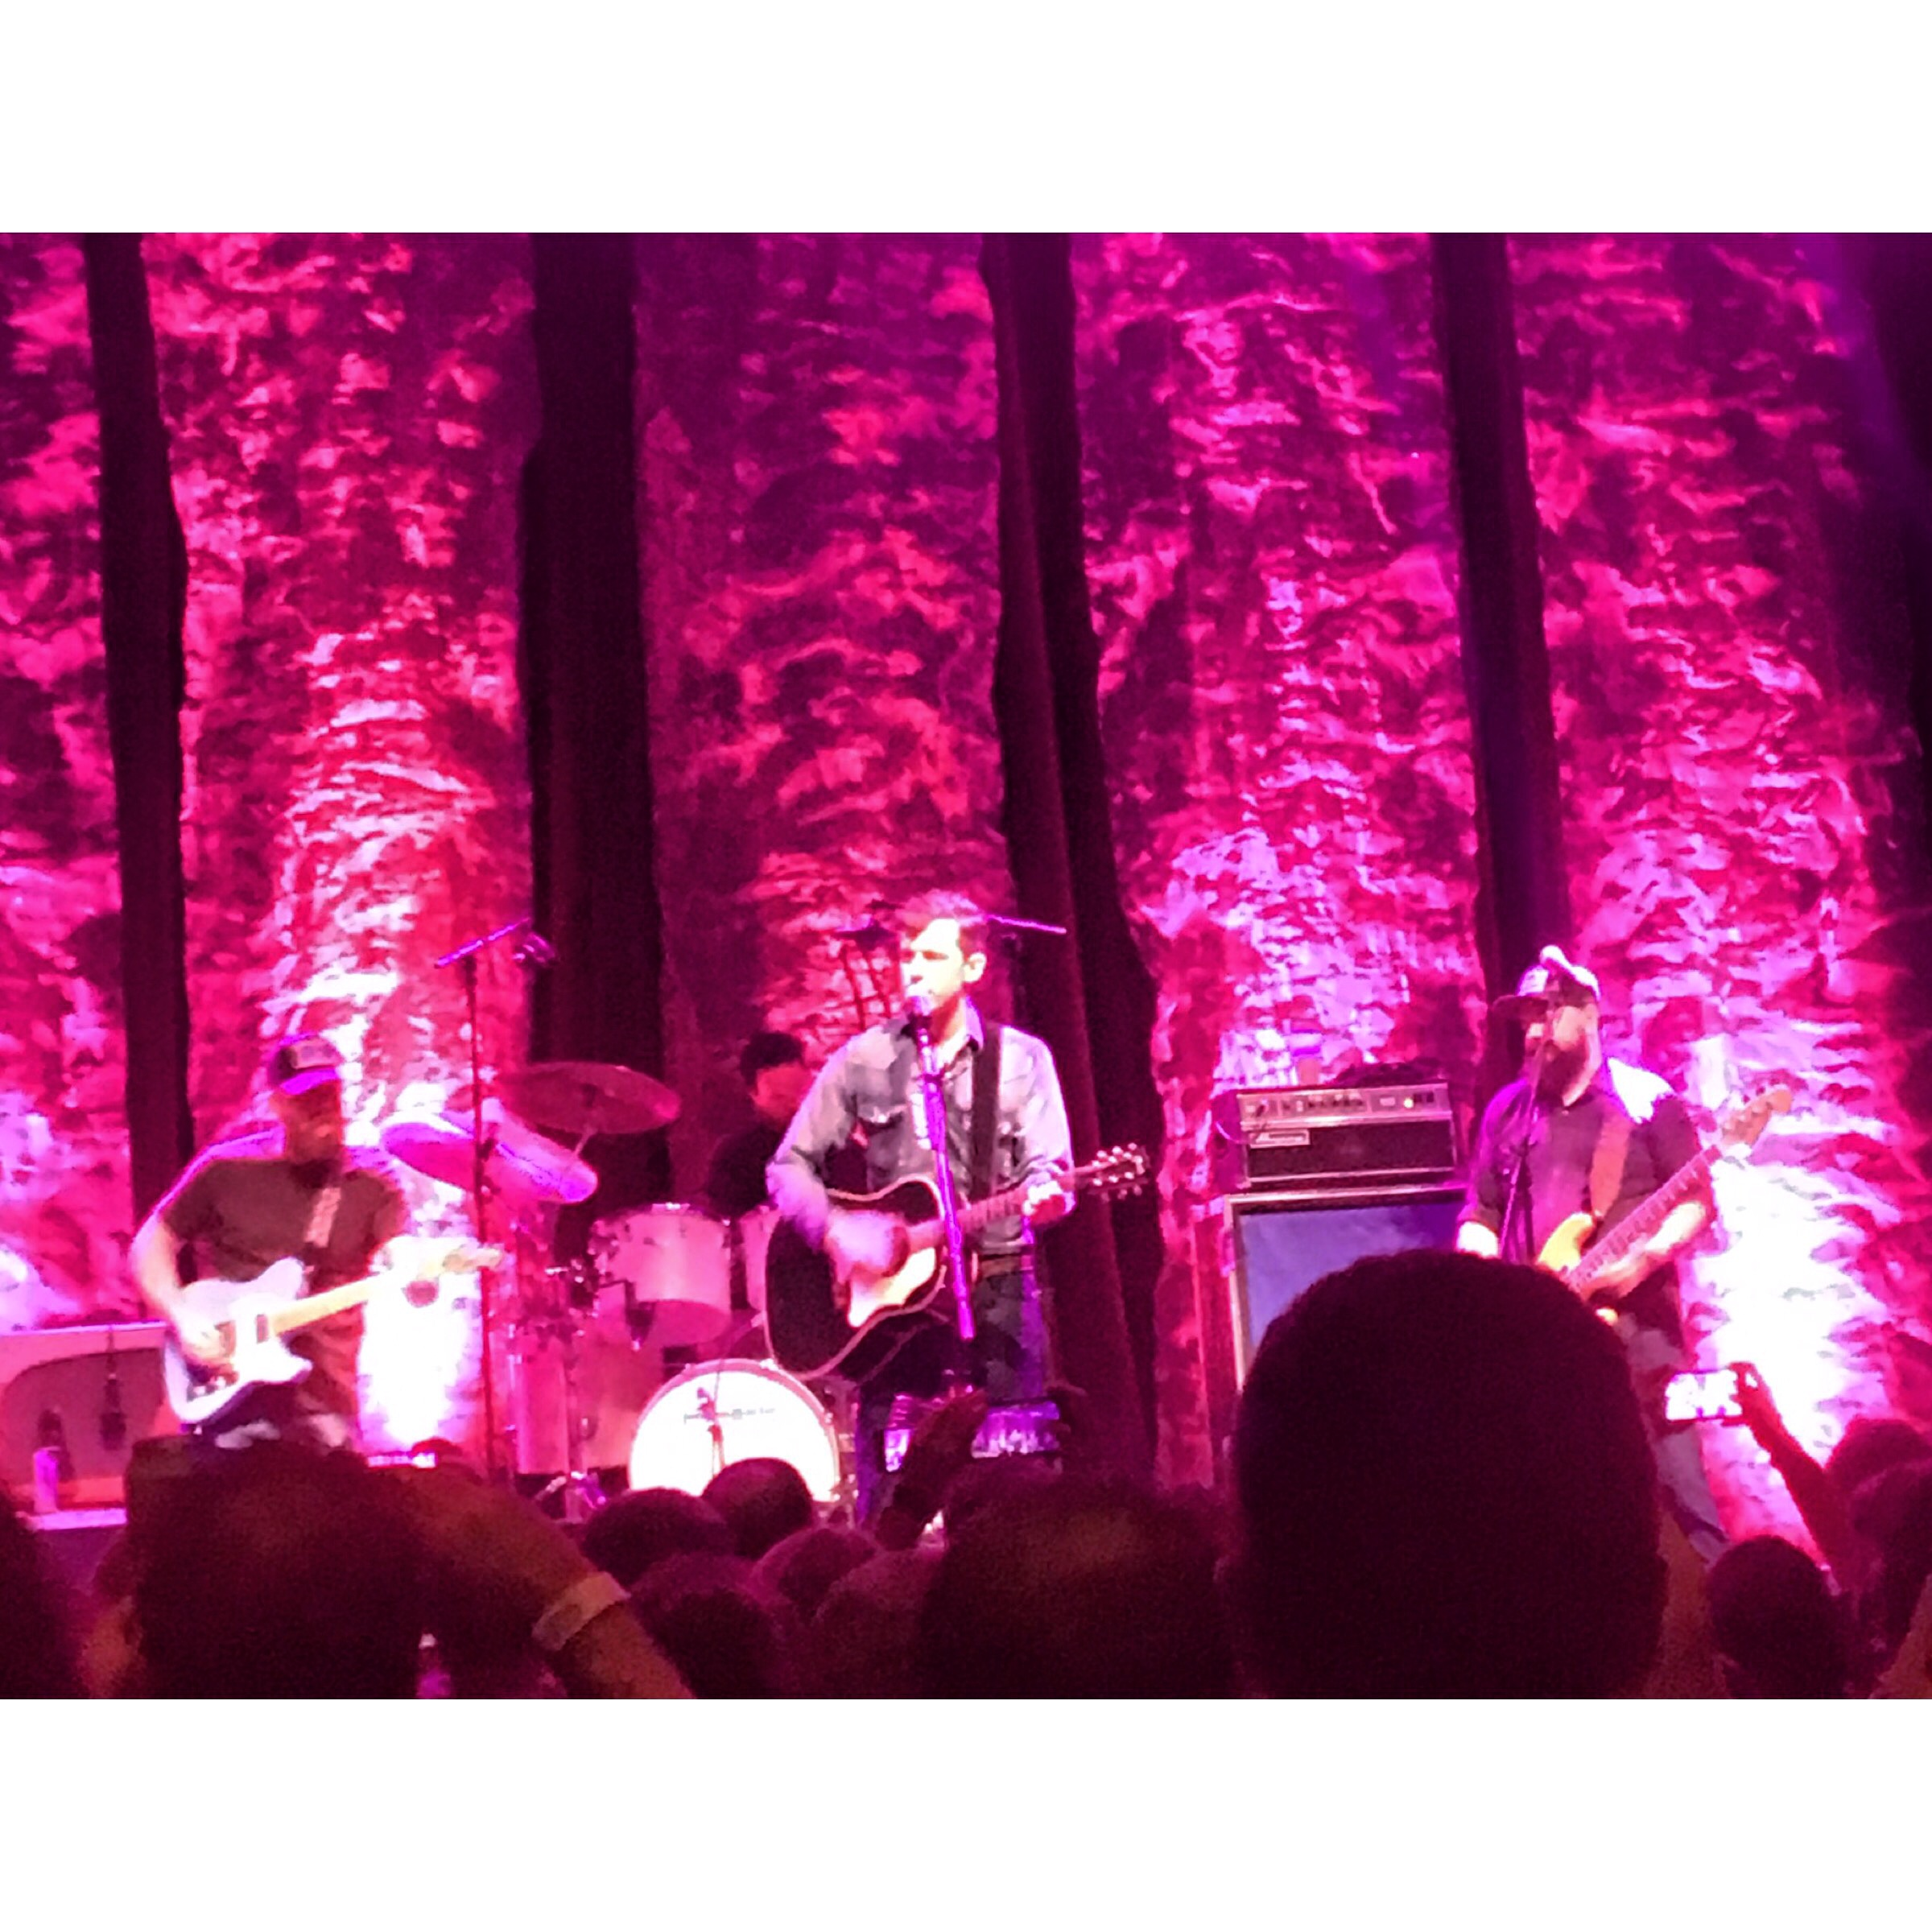 """#2 turnpike troubadours - Mercury Ballroom - March 15, 2018""""Every Girl""""The energy of a Turnpike Troubadours show is a soulful experience. It's the closest I've been to a night at Cain's Ballroom as the wooden floors served as a four-hour honky tonk with the dancing and hoopla. Simply, the greatest country music band on earth."""